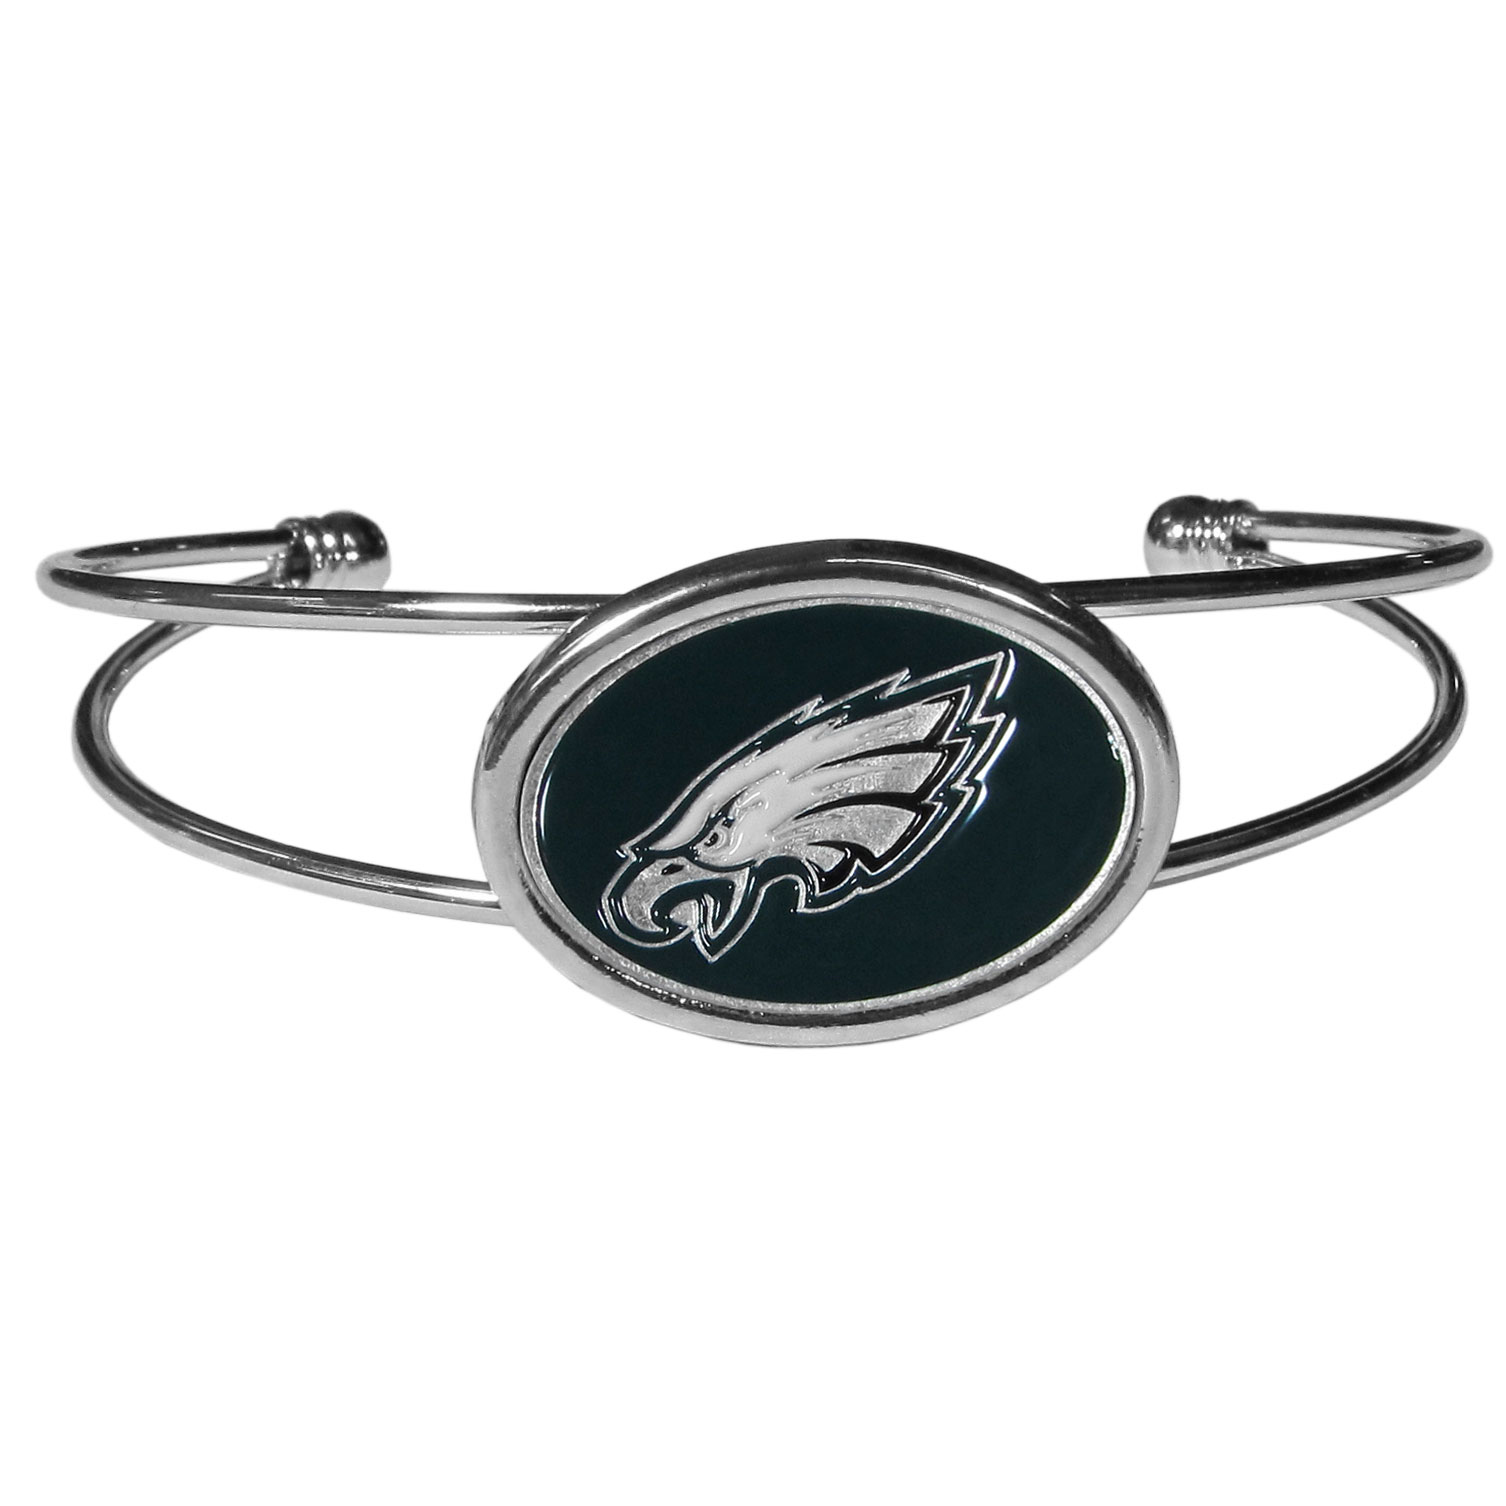 Philadelphia Eagles Cuff Bracelet - These comfortable and fashionable double-bar cuff bracelets feature a 1 inch metal Philadelphia Eagles inset logo with enameled detail.